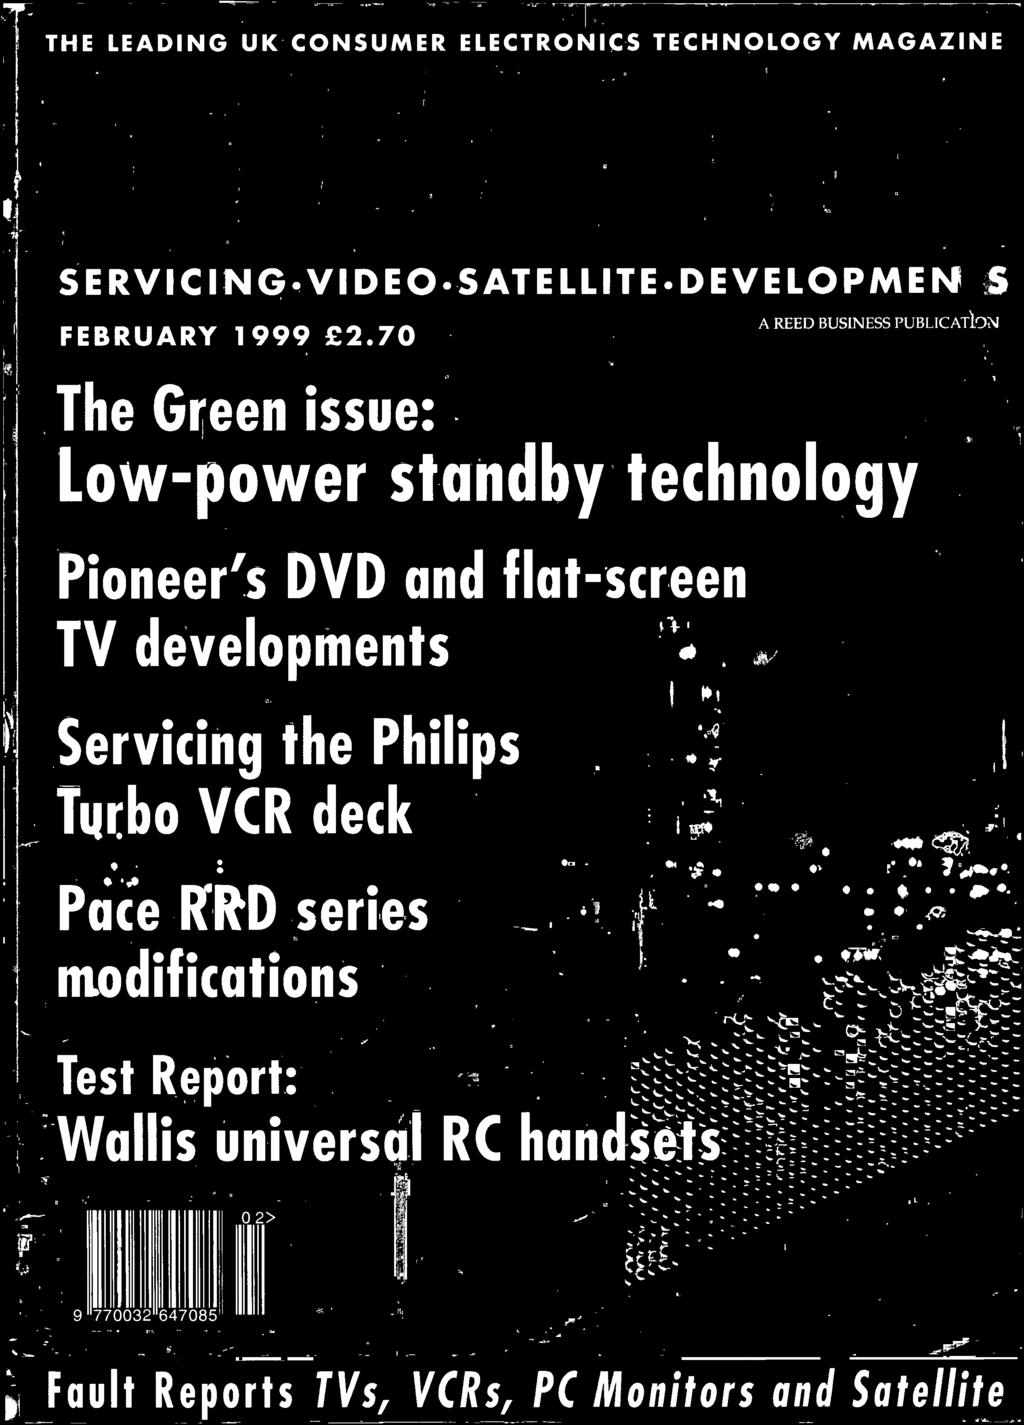 PUBLIC AT tandby technology Pioneer's DVD and flat -screen TV